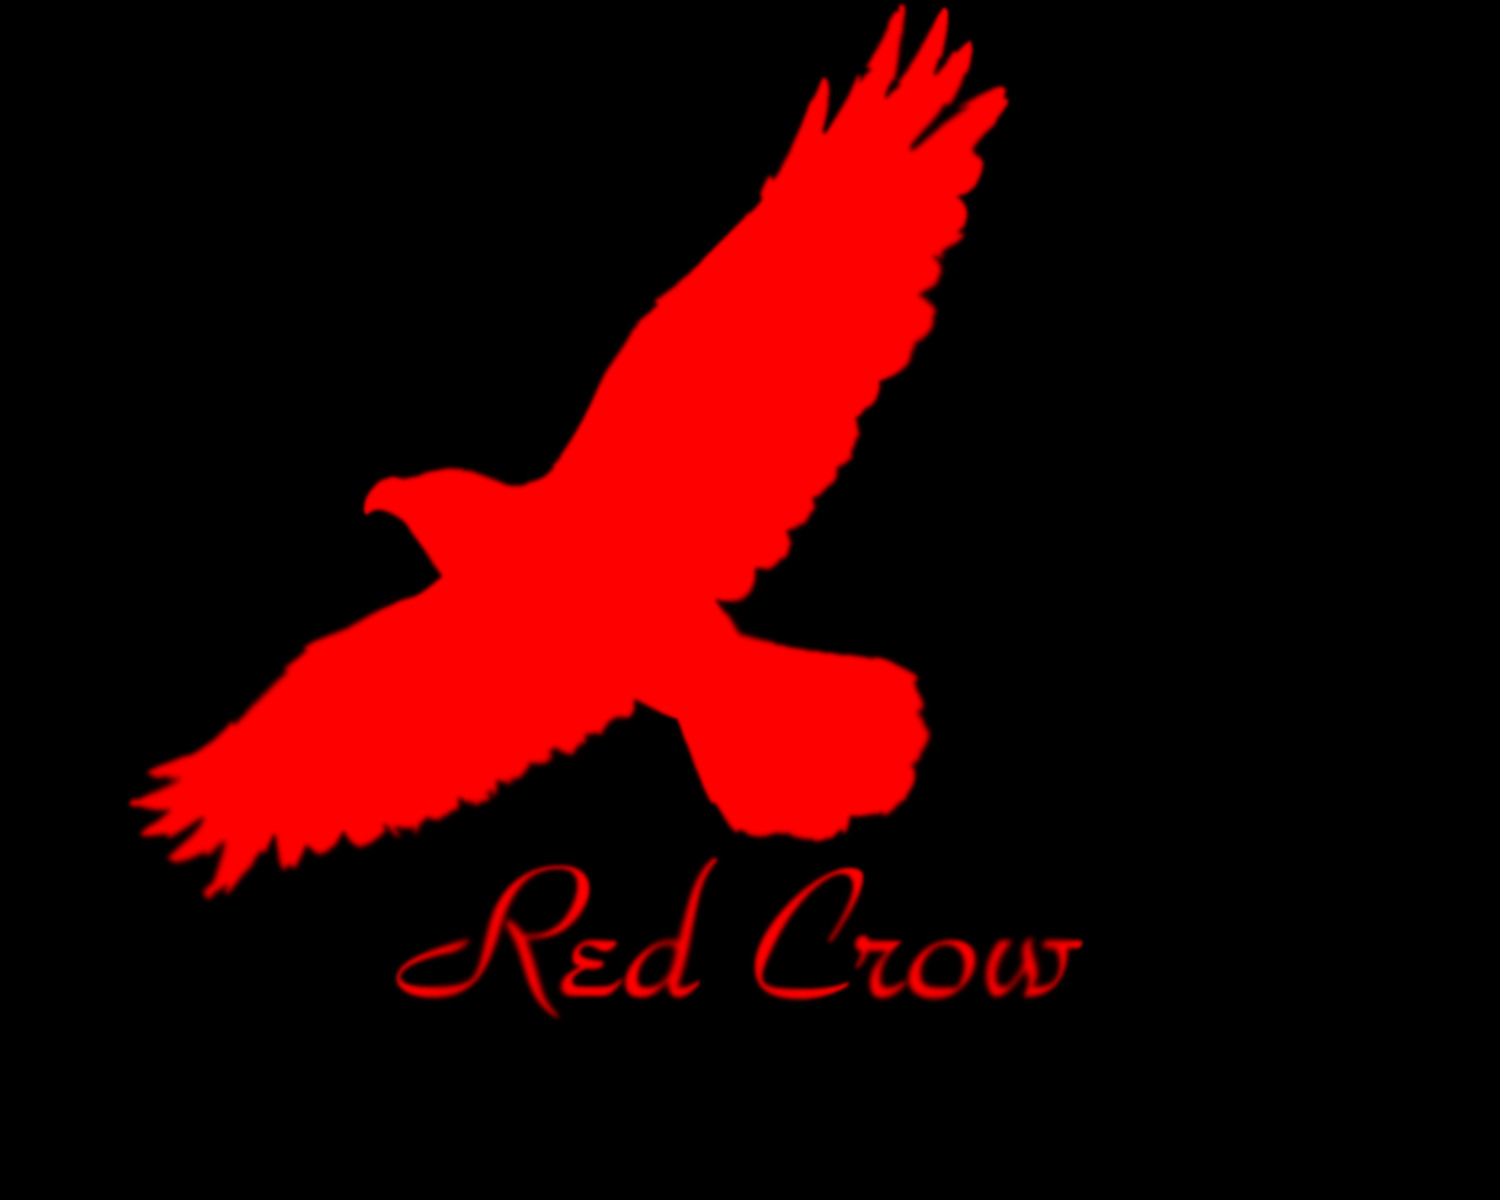 Red Crow by ArtBeginsHere on DeviantArt